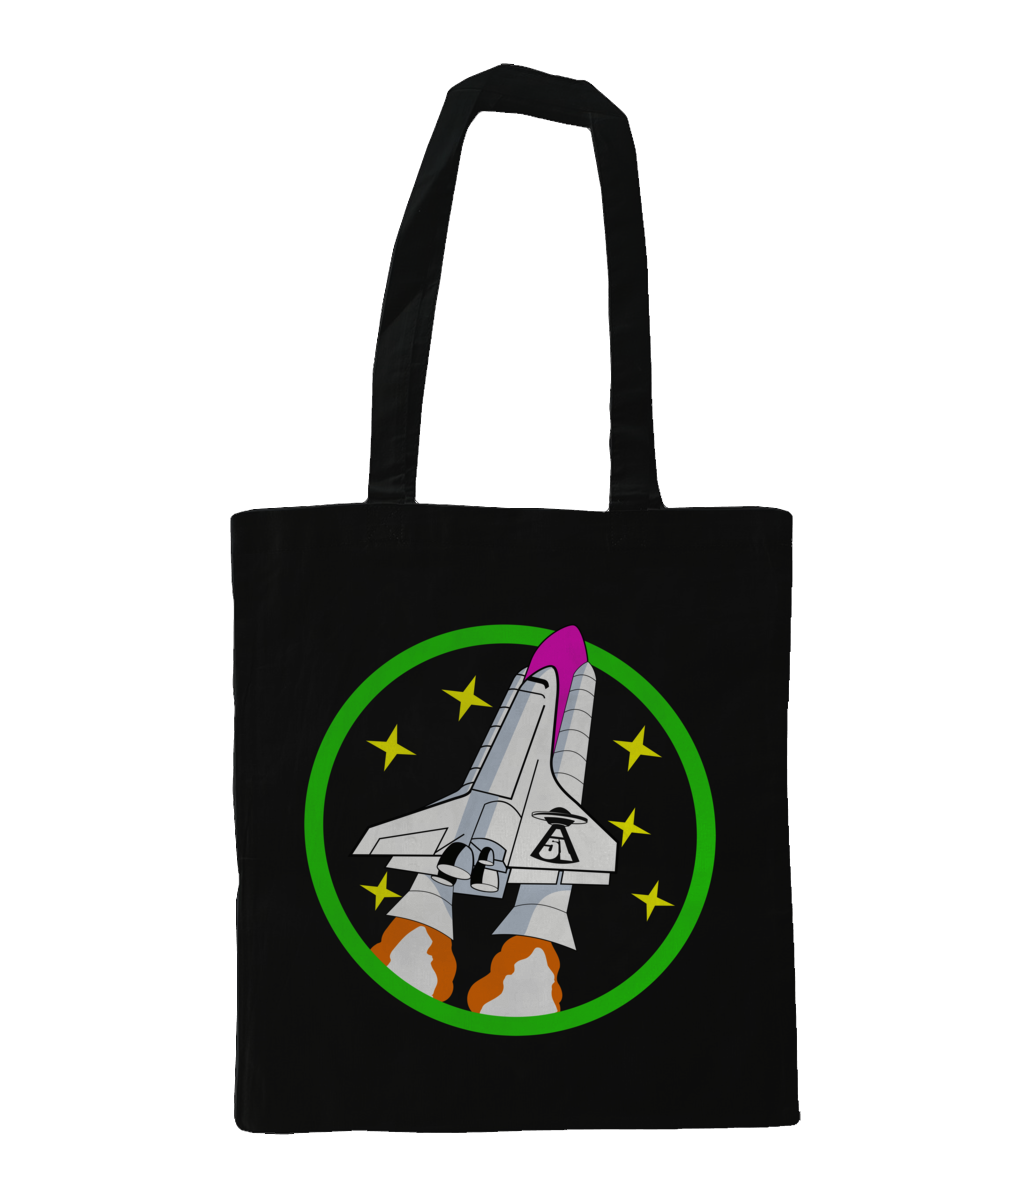 In To Orbit - Tote Bag - Abduction 51 Extraterrestrial Streetwear | UFO & Alien Inspired